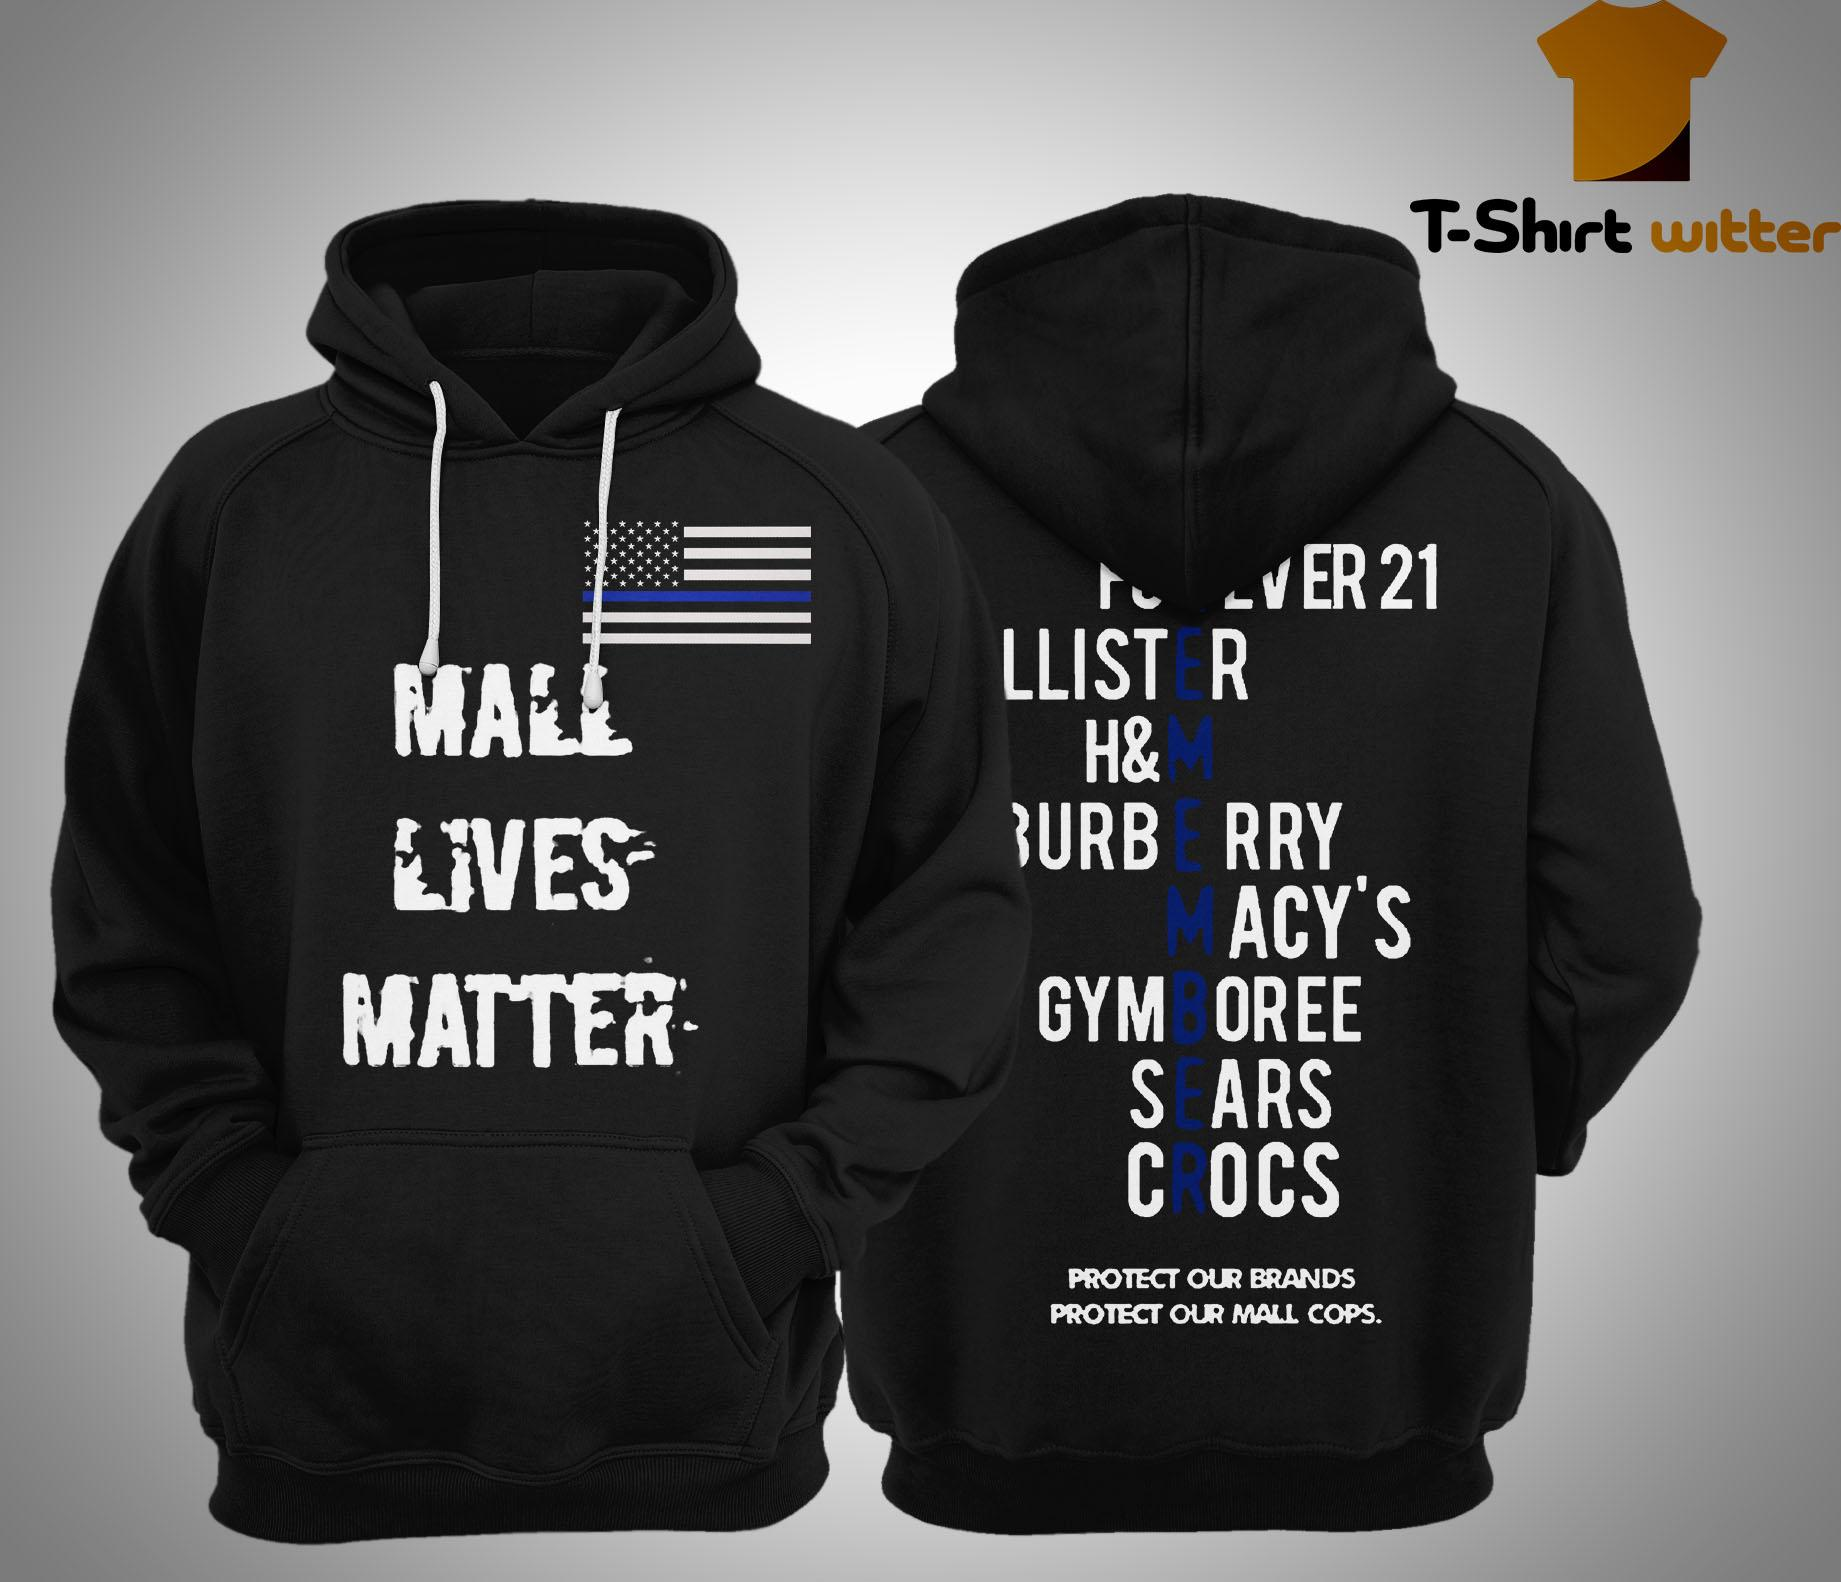 Mall Lives Matter Remember Protect Our Brands Hoodie